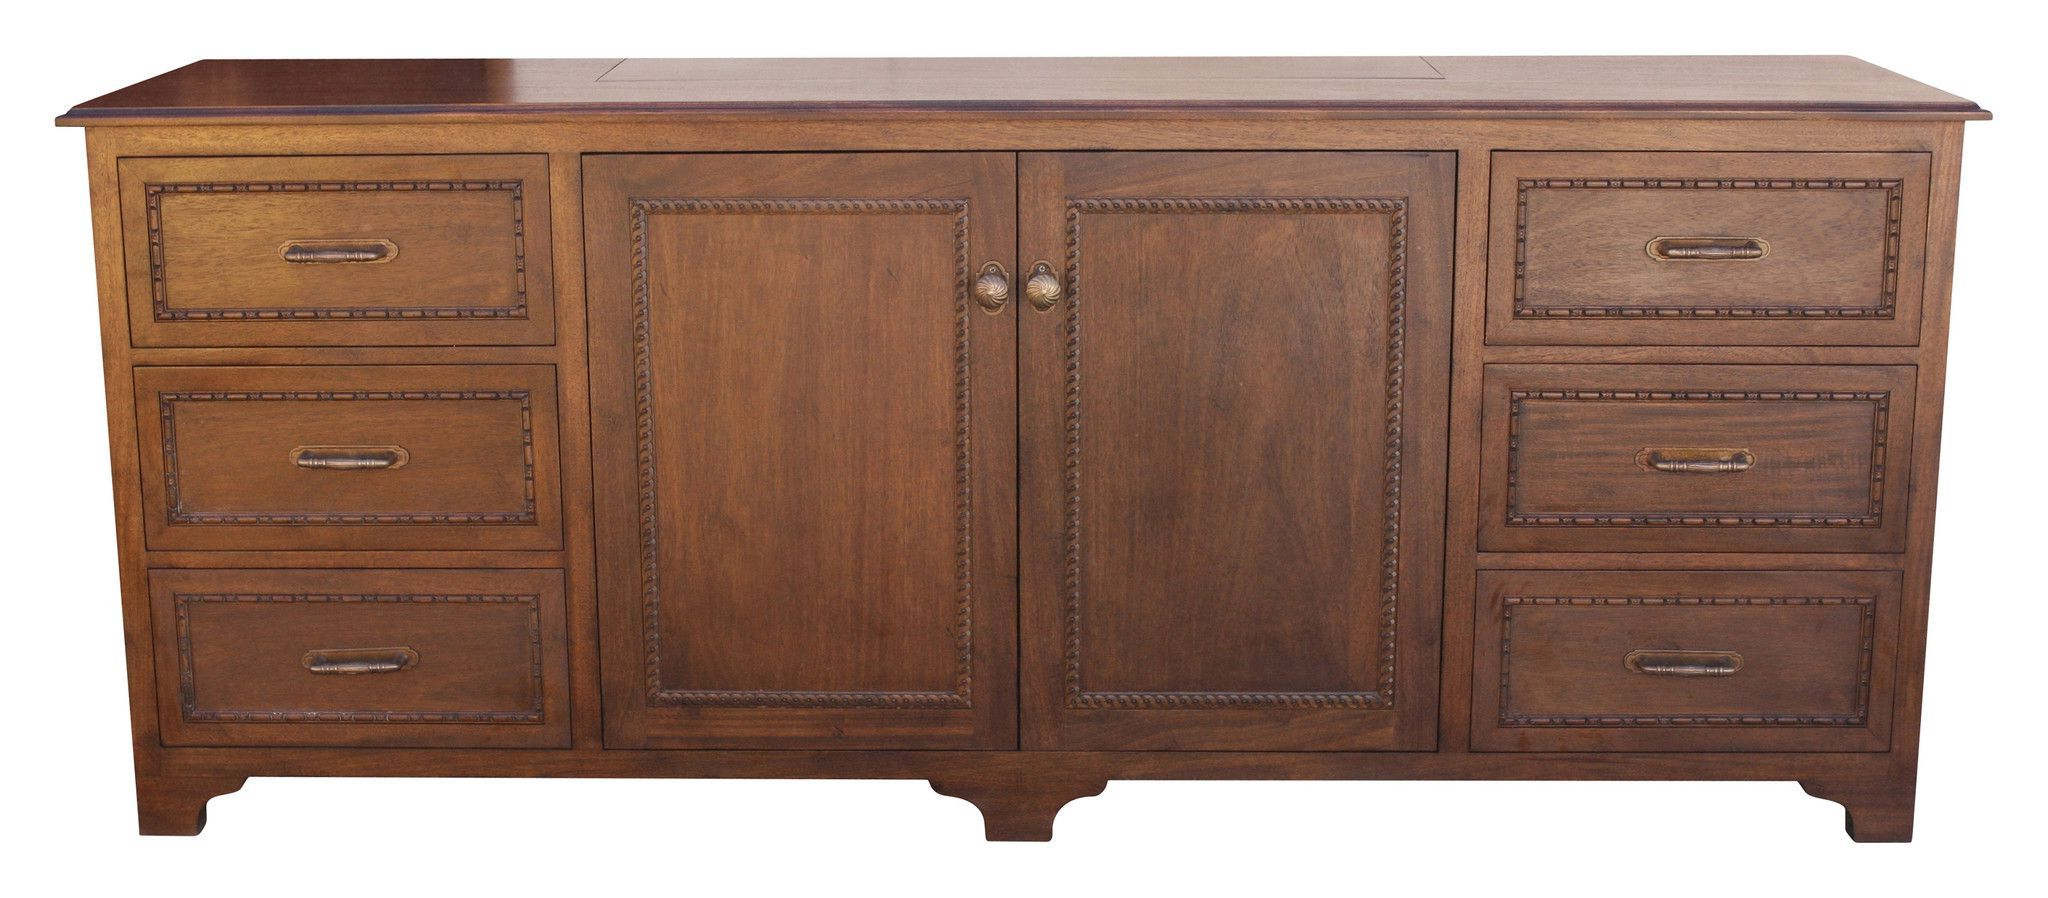 One Kings Lane Beulah 3 Door Cabinet – Pecan In 2019 Throughout Chaffins Sideboards (View 14 of 20)